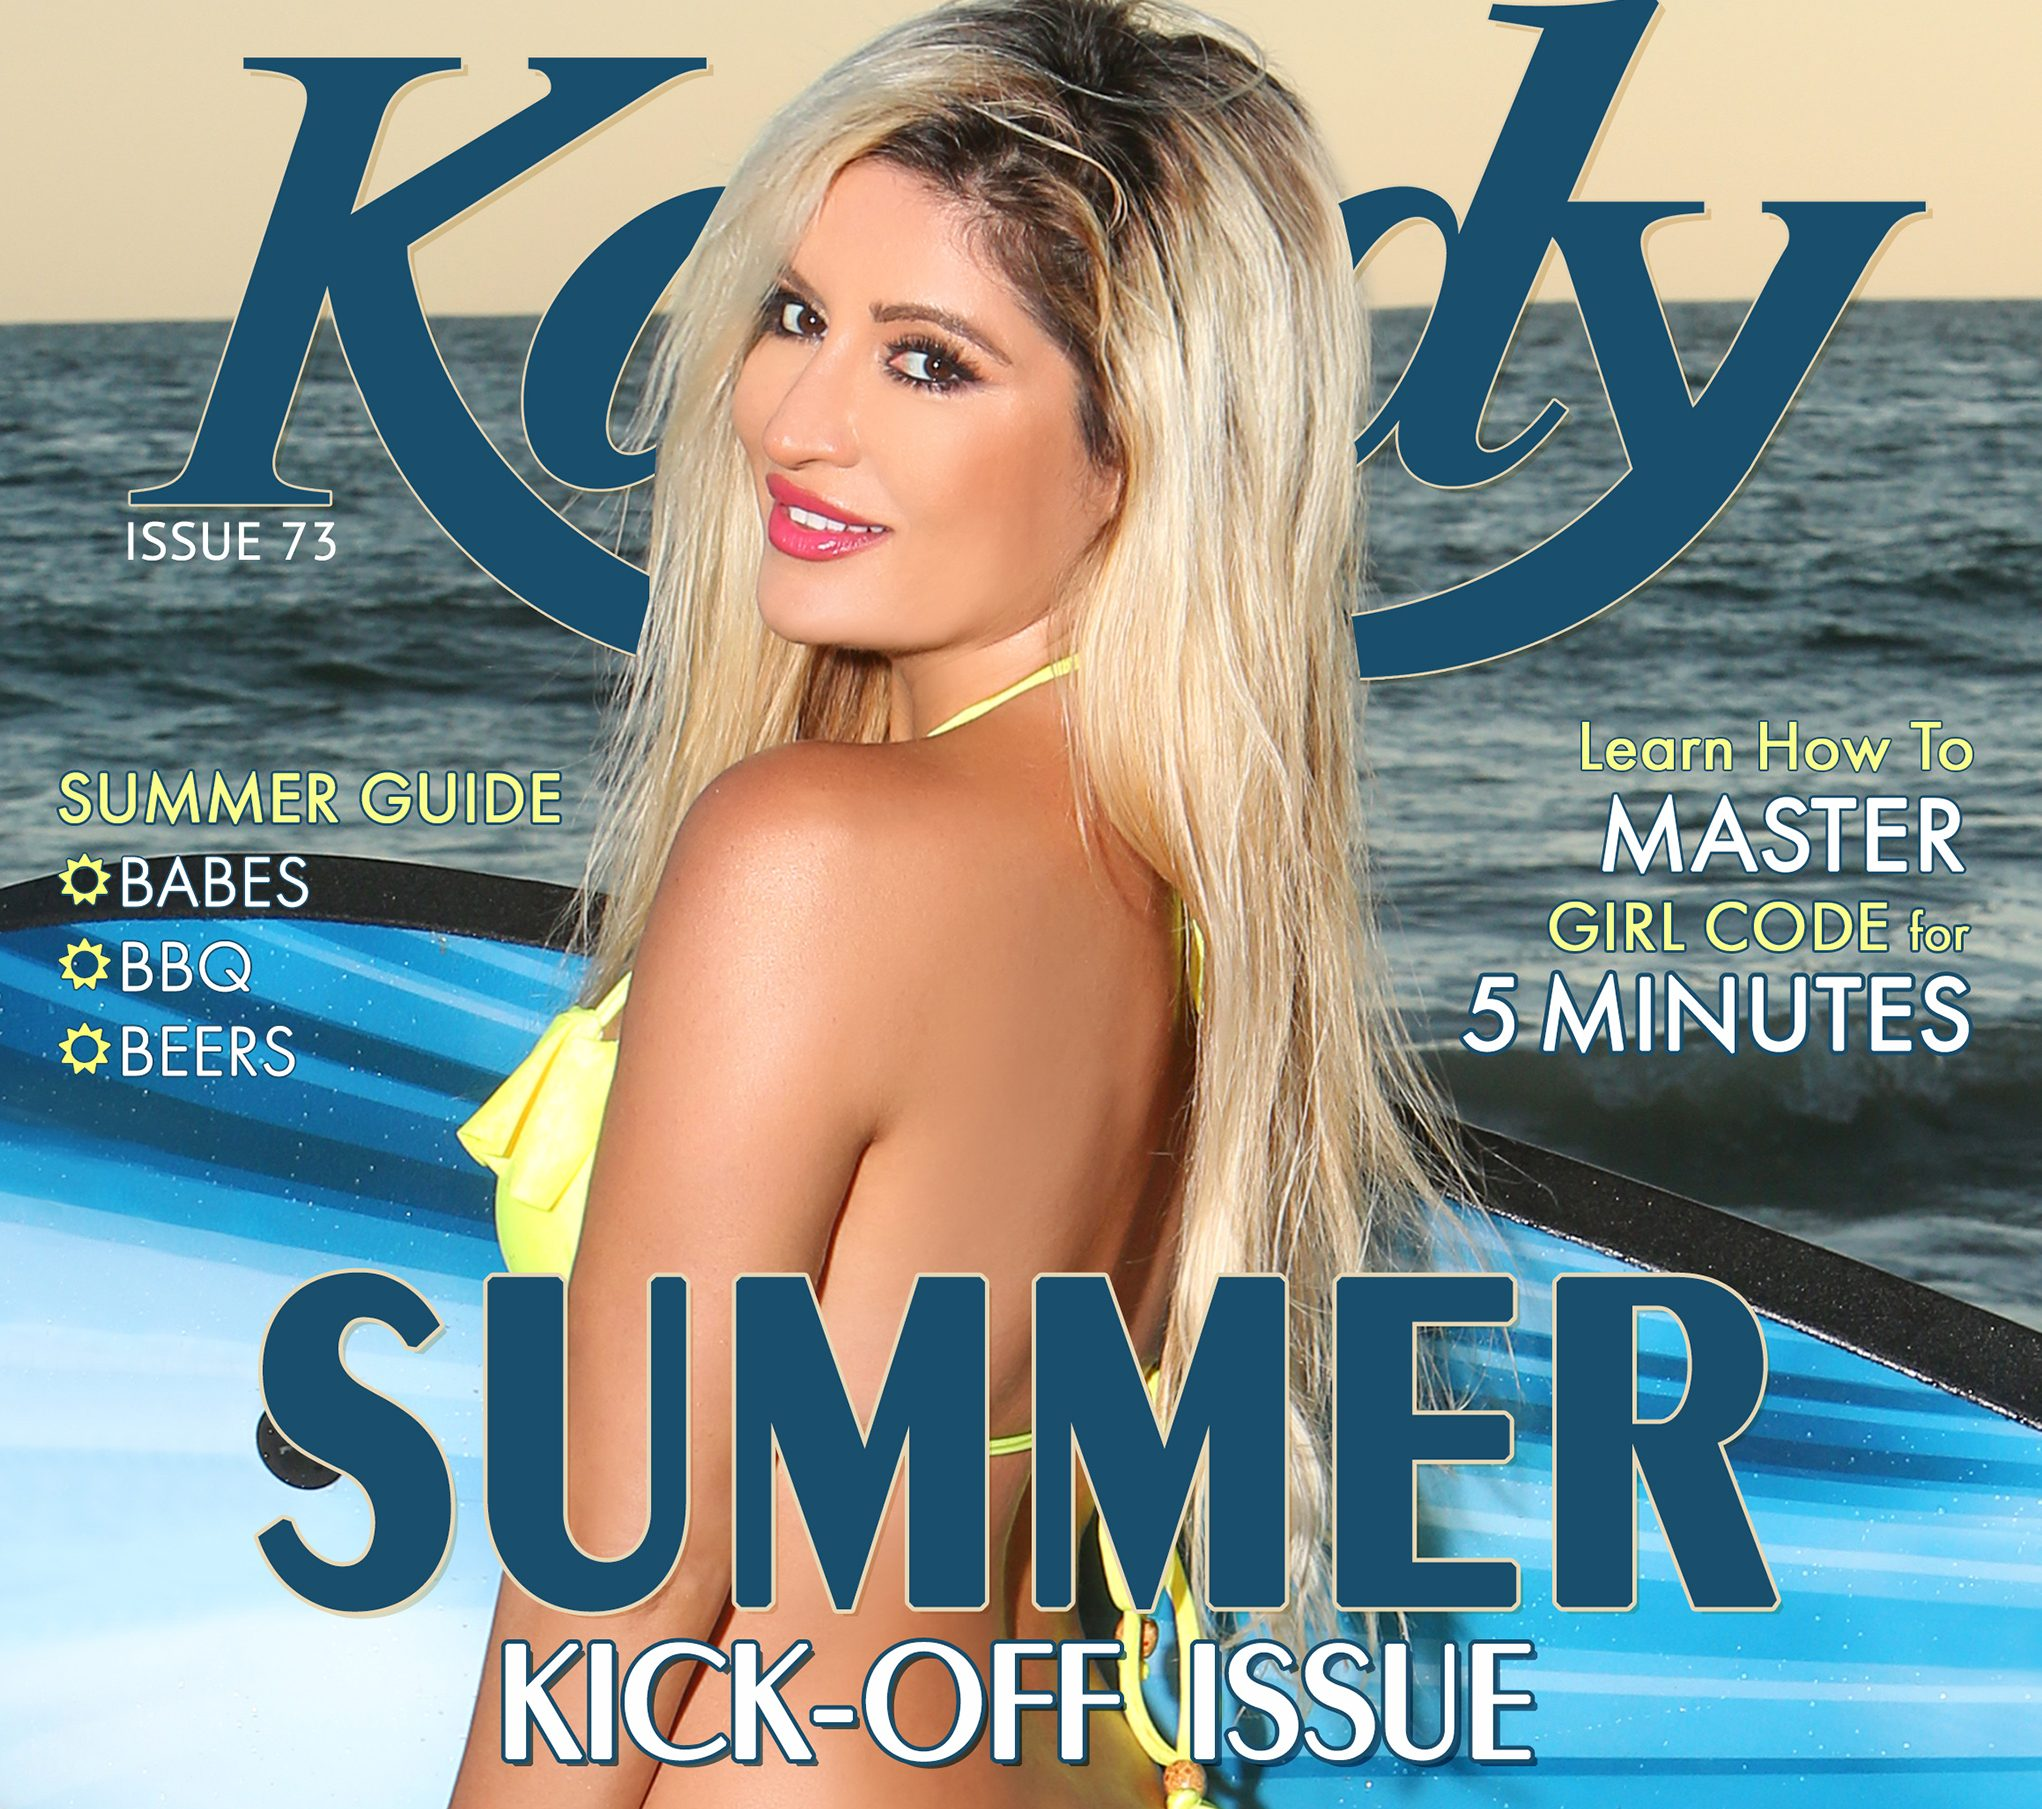 Kandy 2018 Summer Kickoff Issue